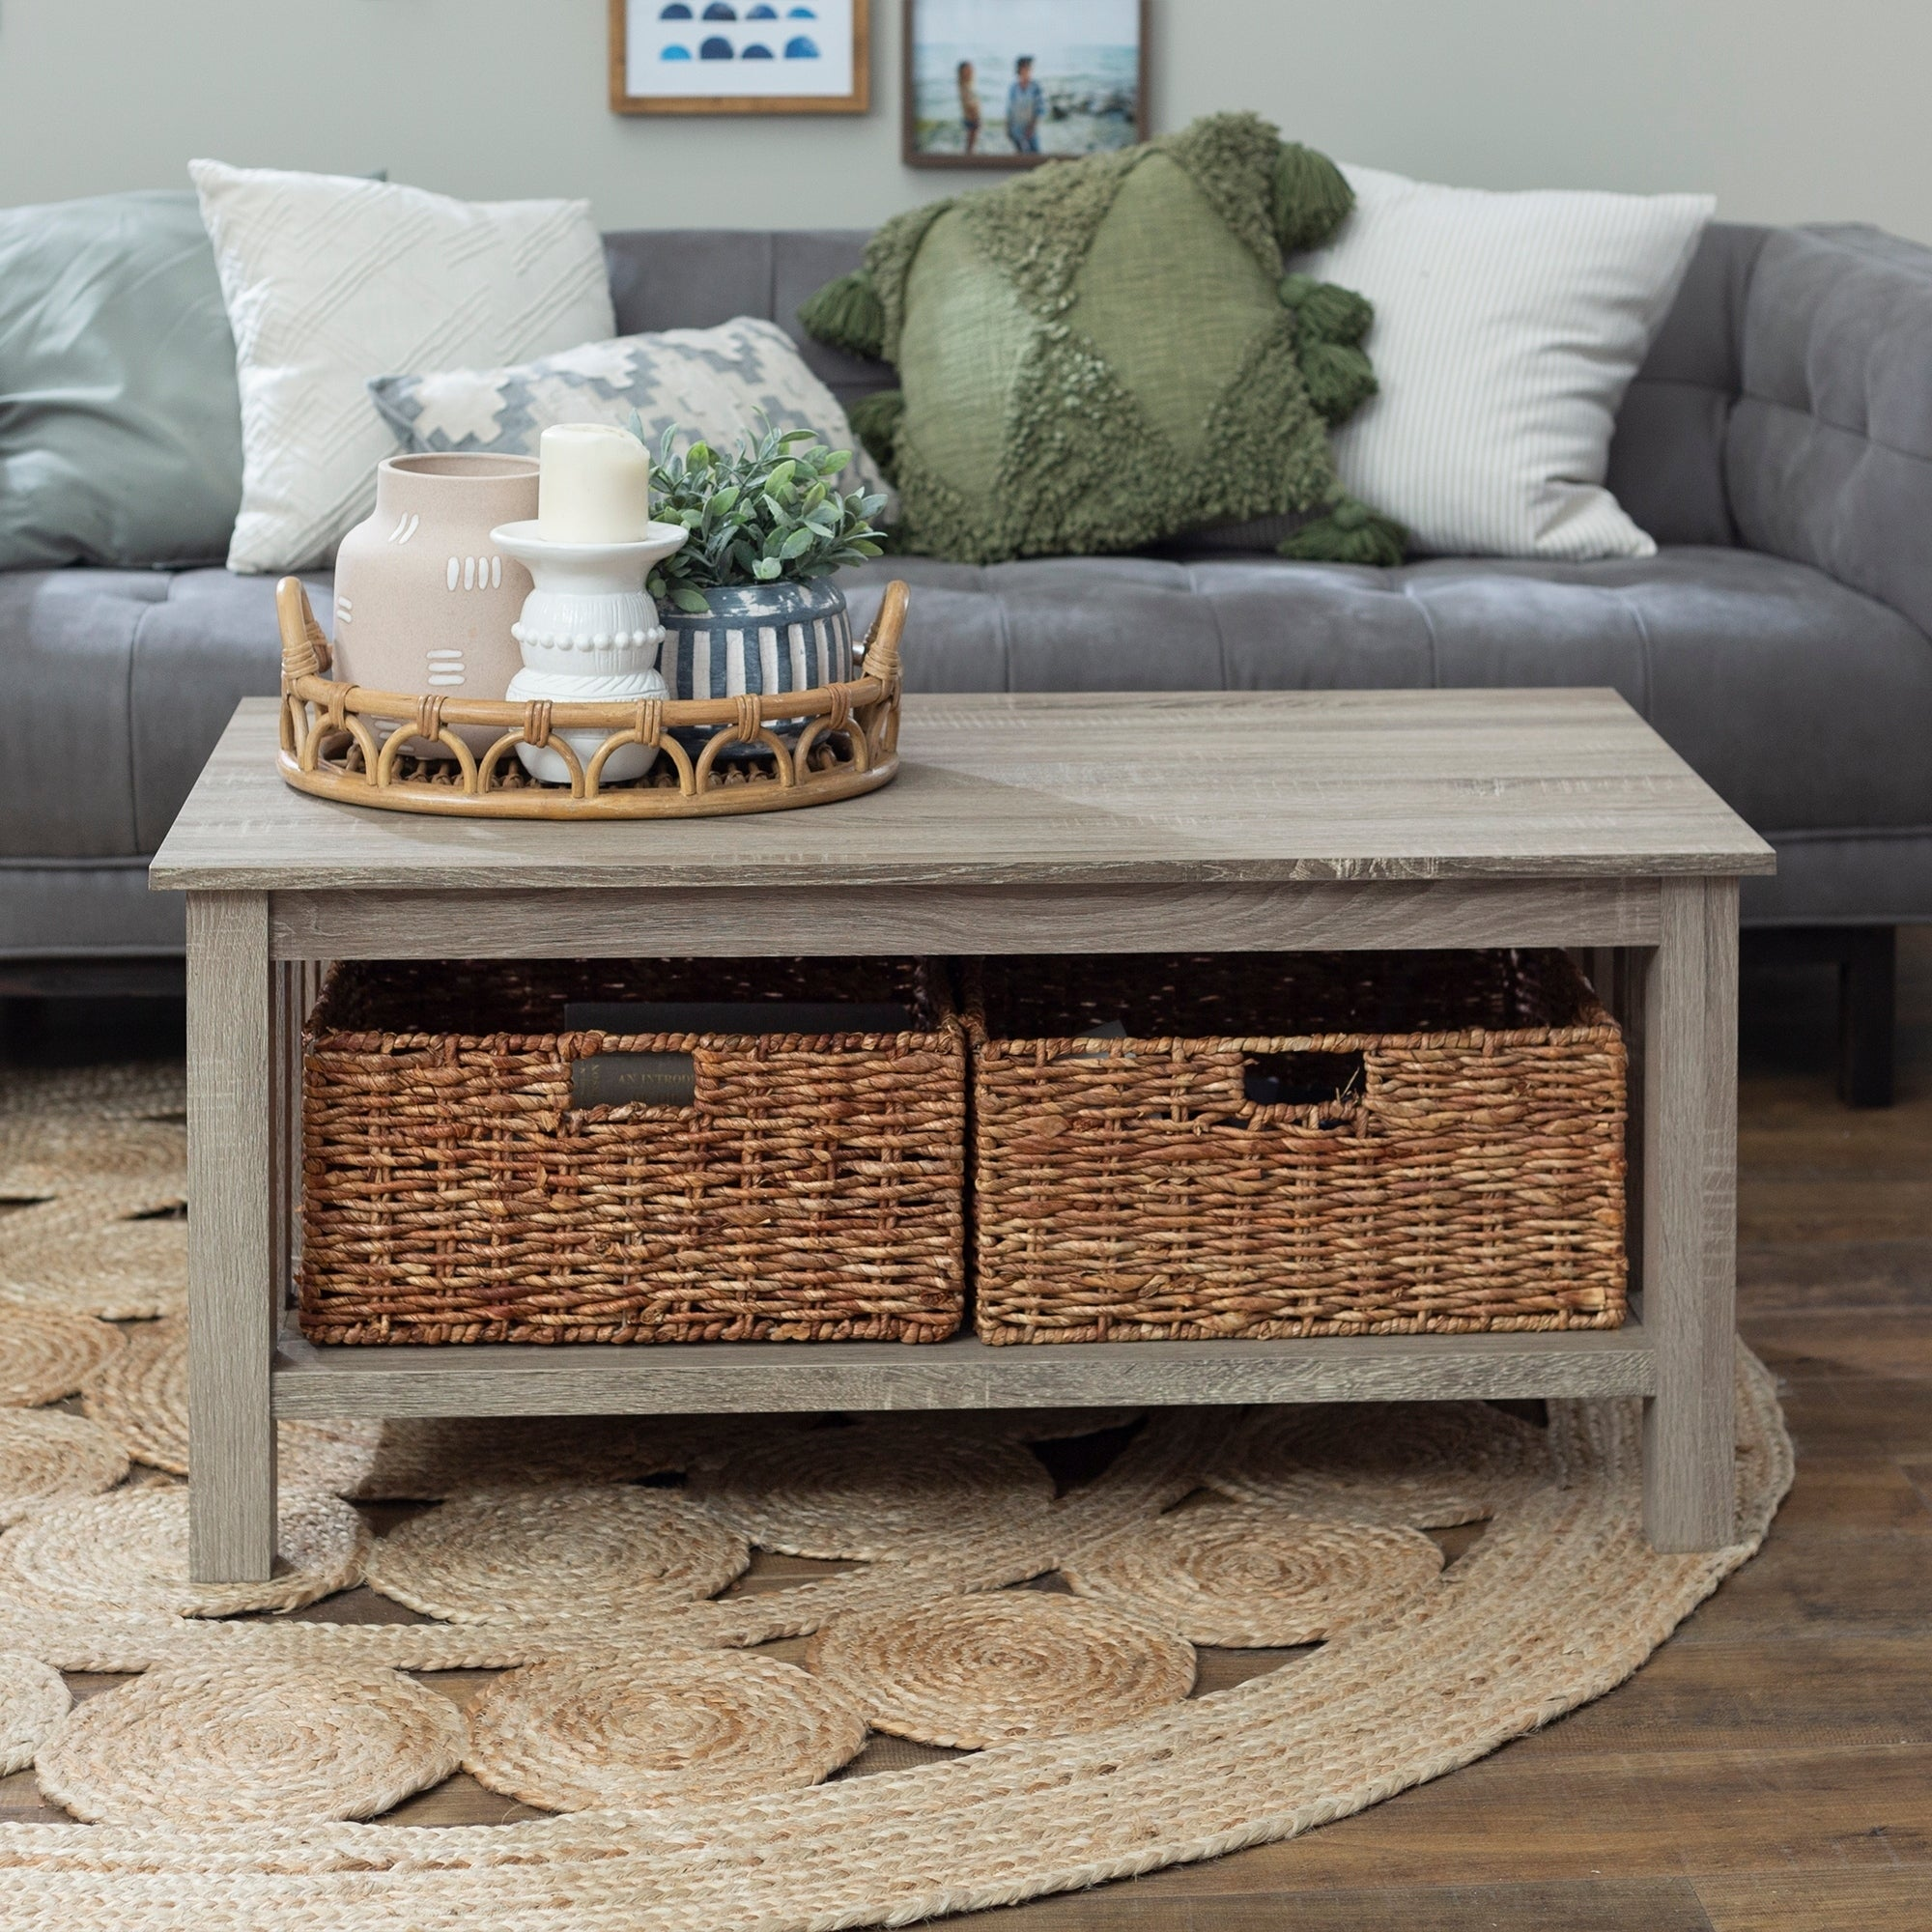 - Shop 40-inch Coffee Table With Wicker Storage Baskets - Driftwood